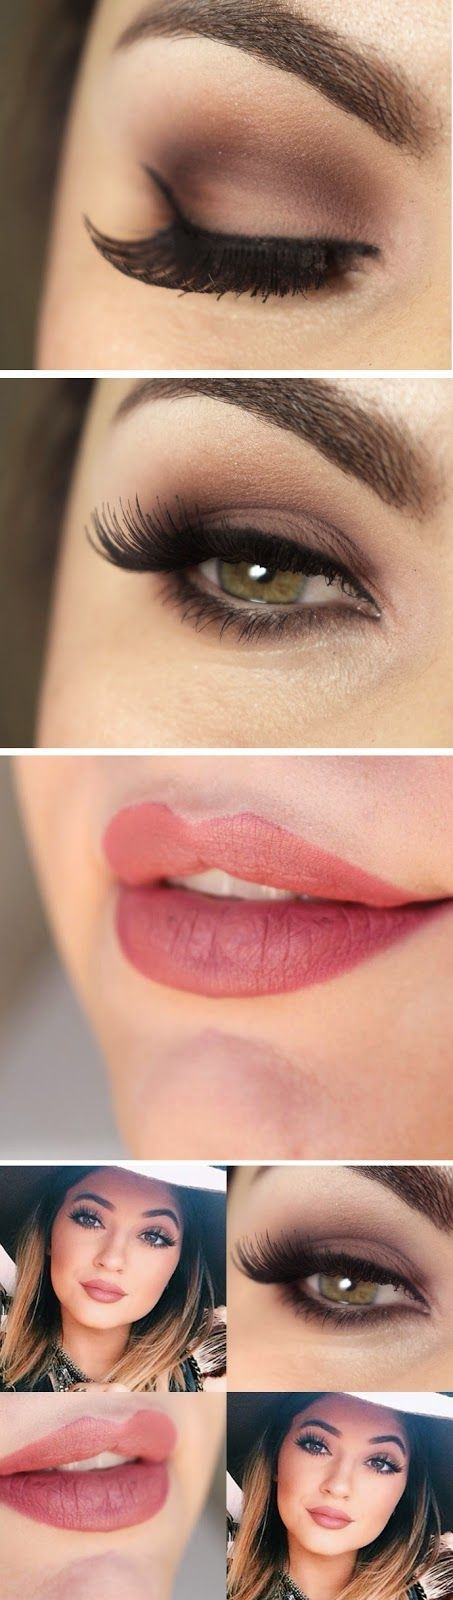 ... Makeup Tips To Look Younger And Flawless The Brunette; 19 Best Images About Sassy Eyeliner On Pinterest Winged Eye ...